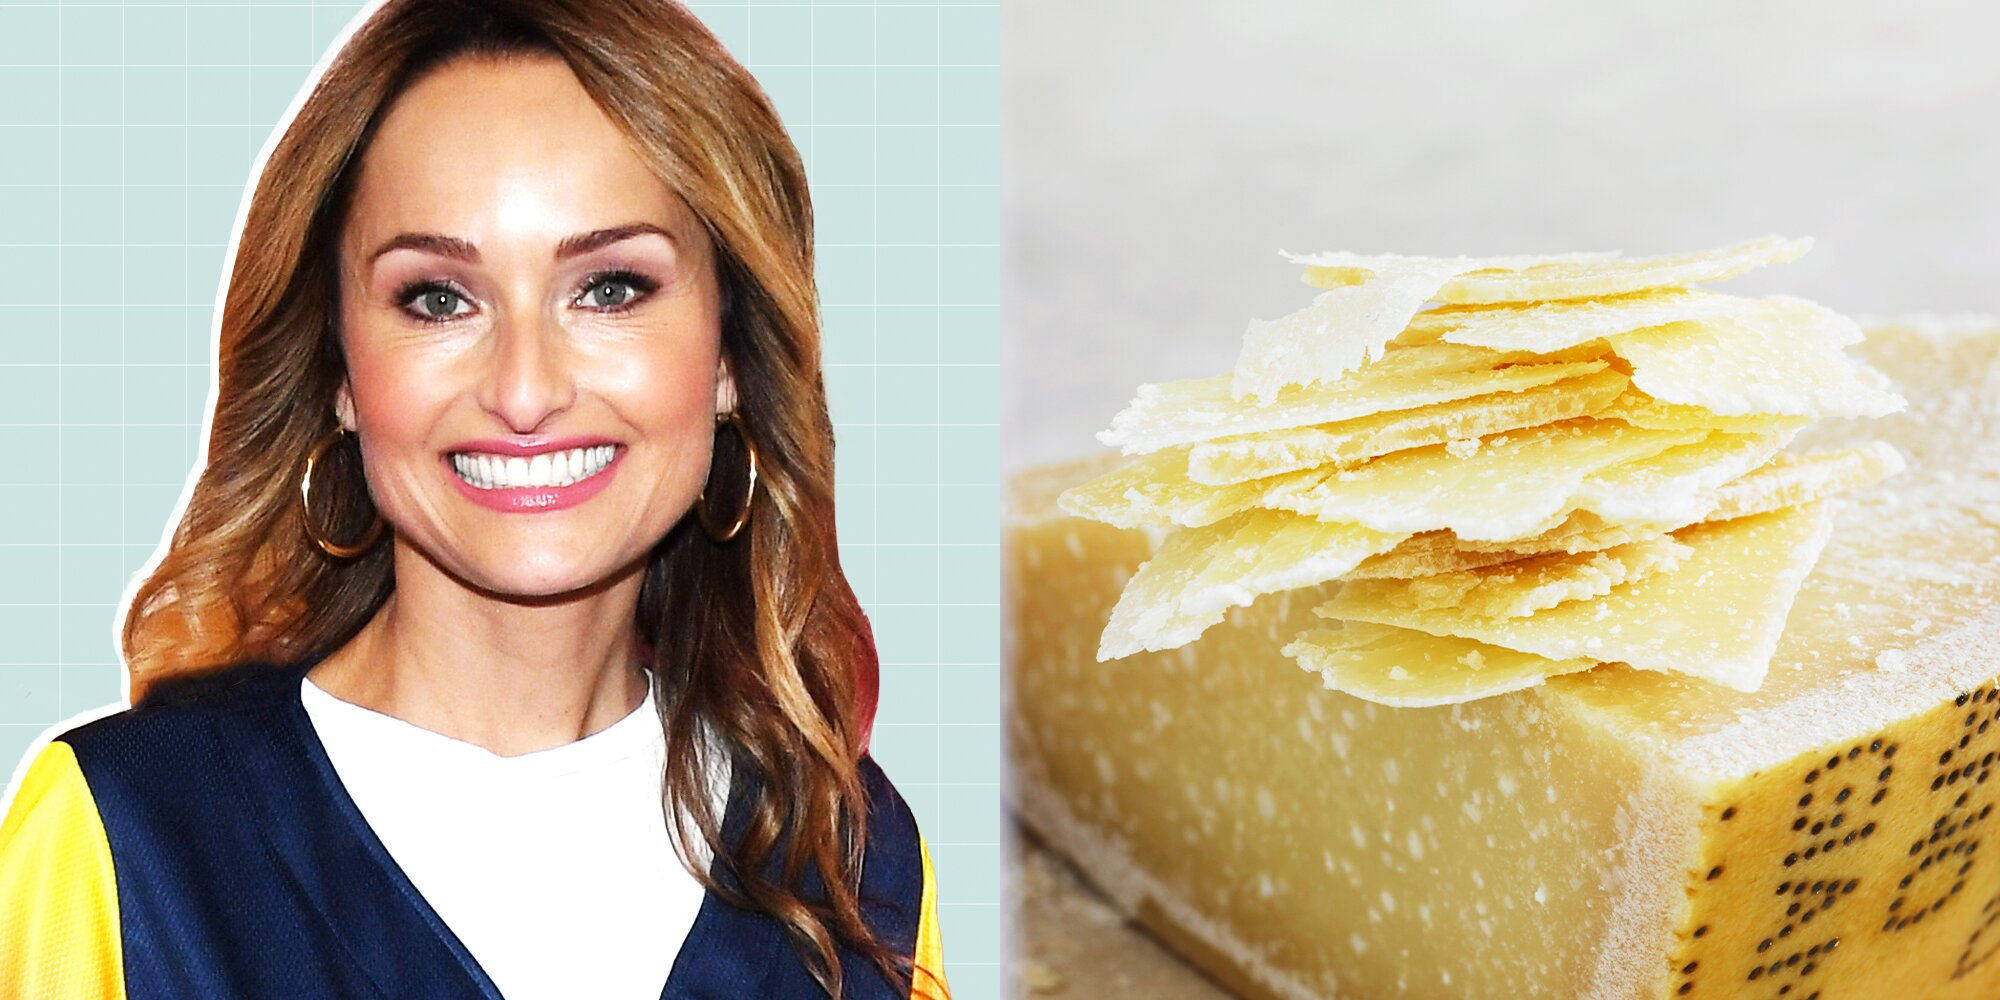 Giada Has the Smartest Way to Keep Parmesan Rinds From Going to Waste